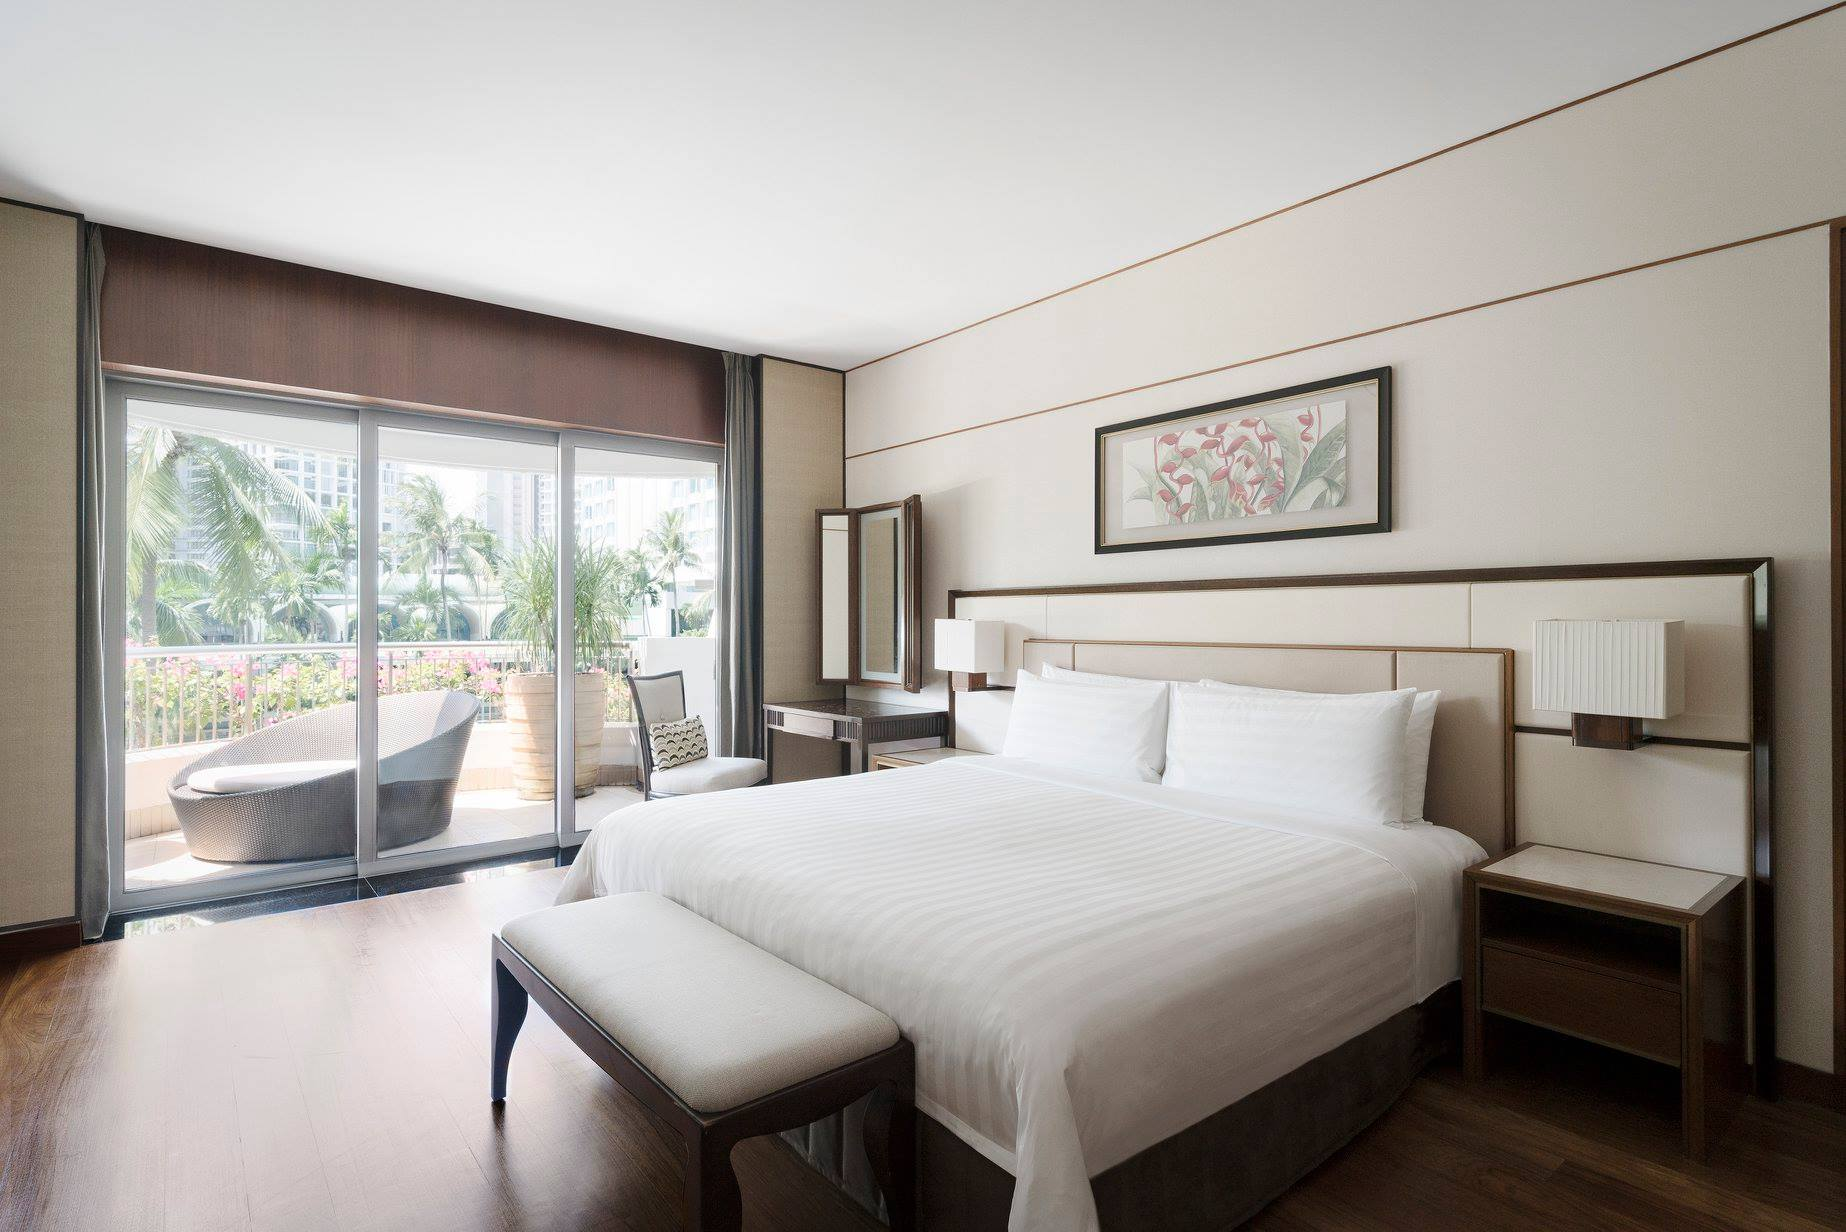 cozy bedroom with spacious balcony shangri-la singaore